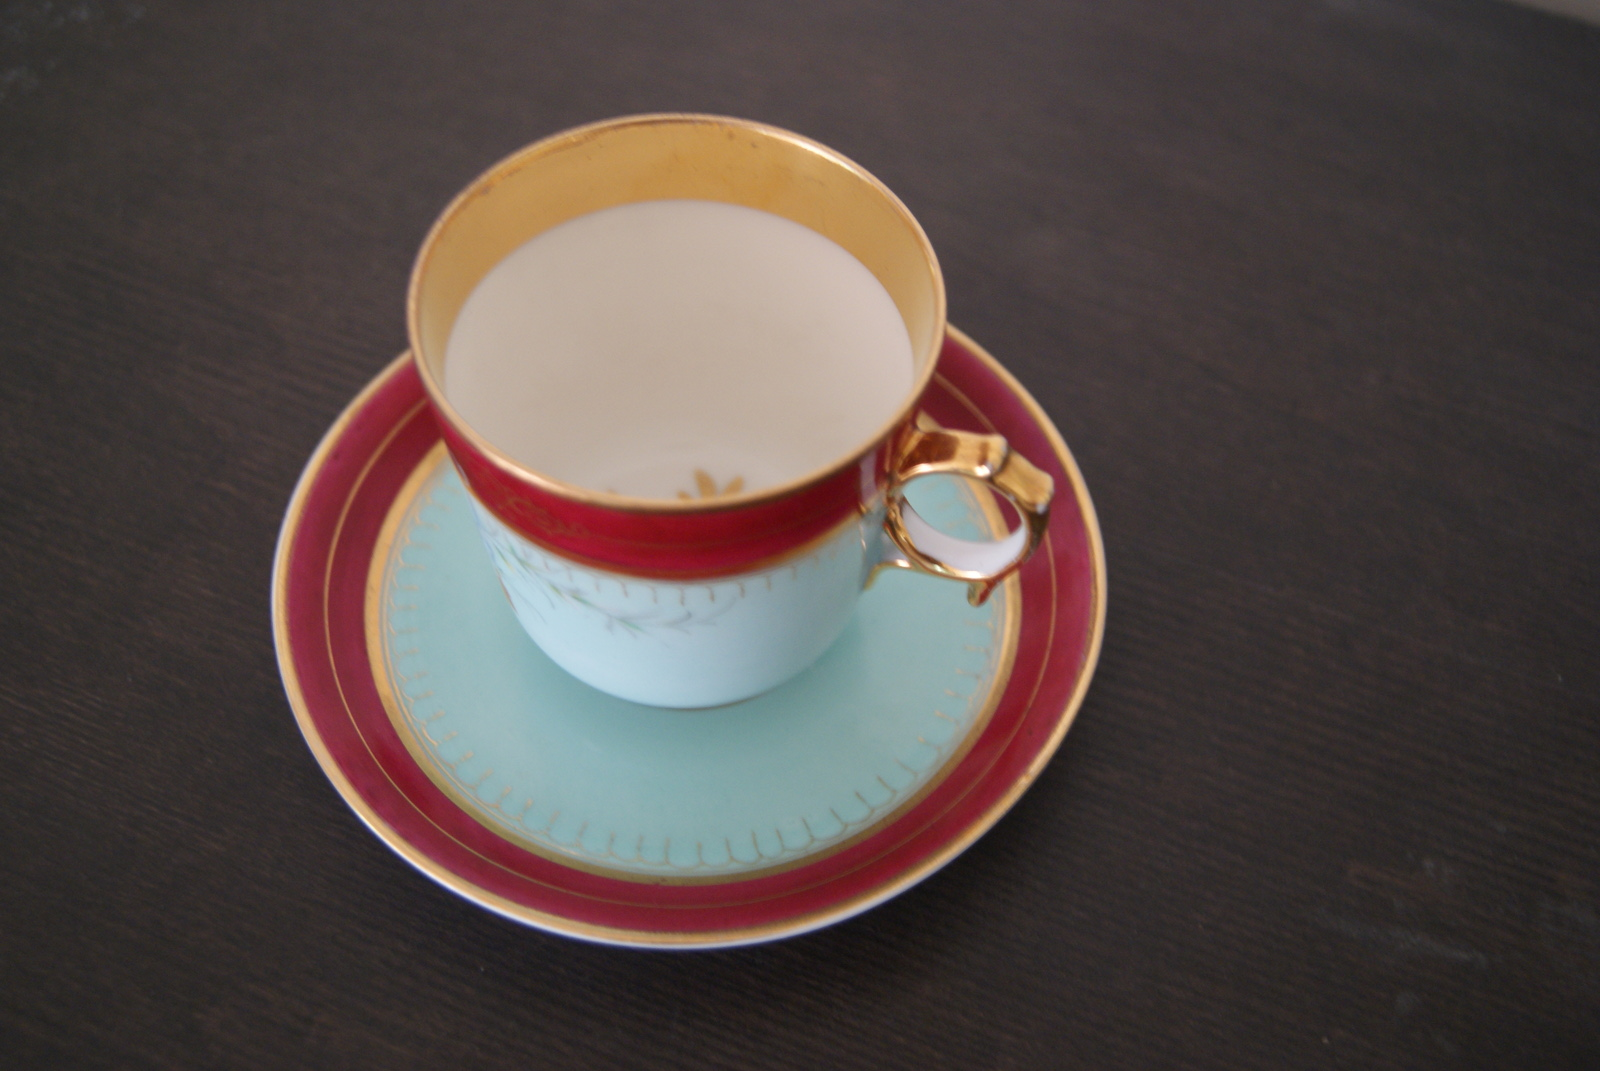 Waldenburg - Altwasser tea cup with saucer with Beautiful handpainted decor